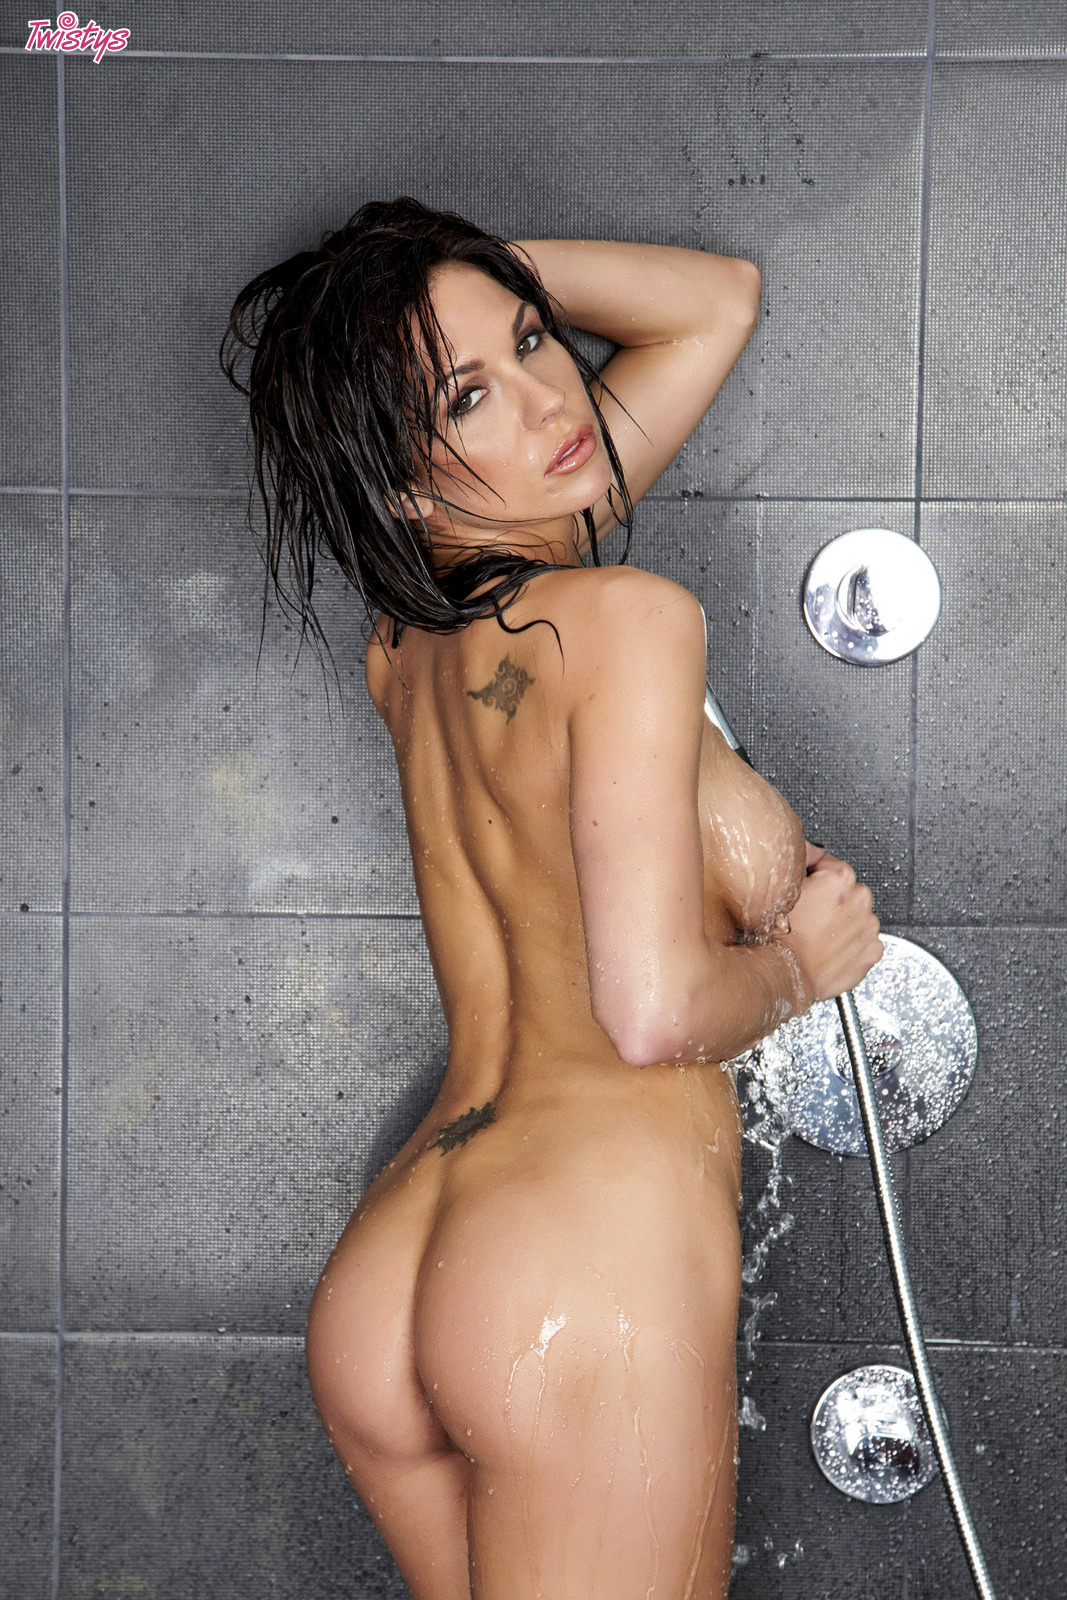 the price is right girls models naked pussy images